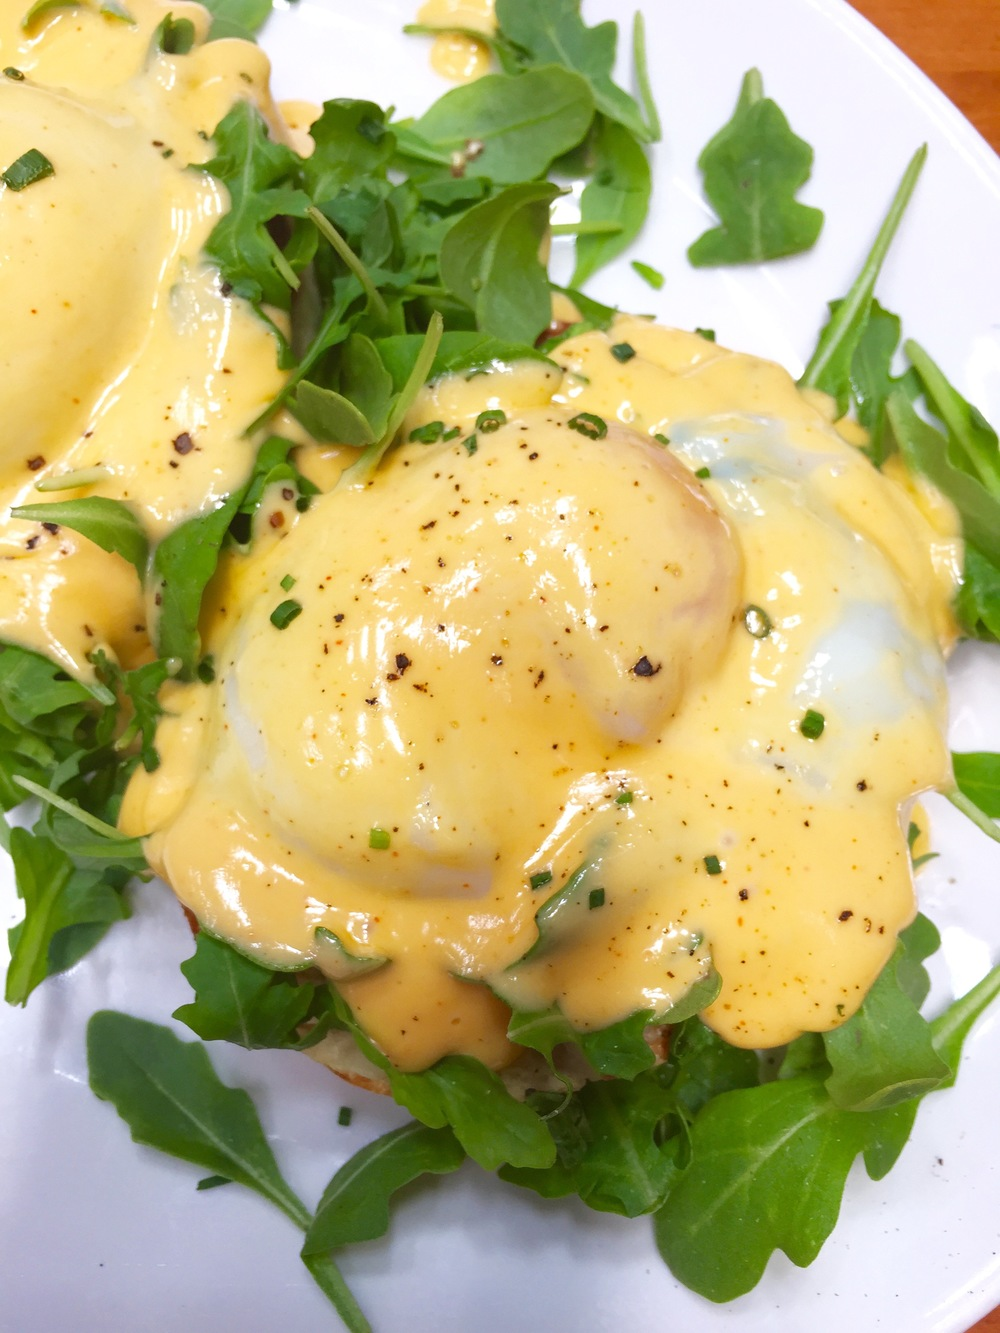 Eggs Benedict with  Canadian bacon, arugula, slow poached eggs, hollandaise, and English muffin.